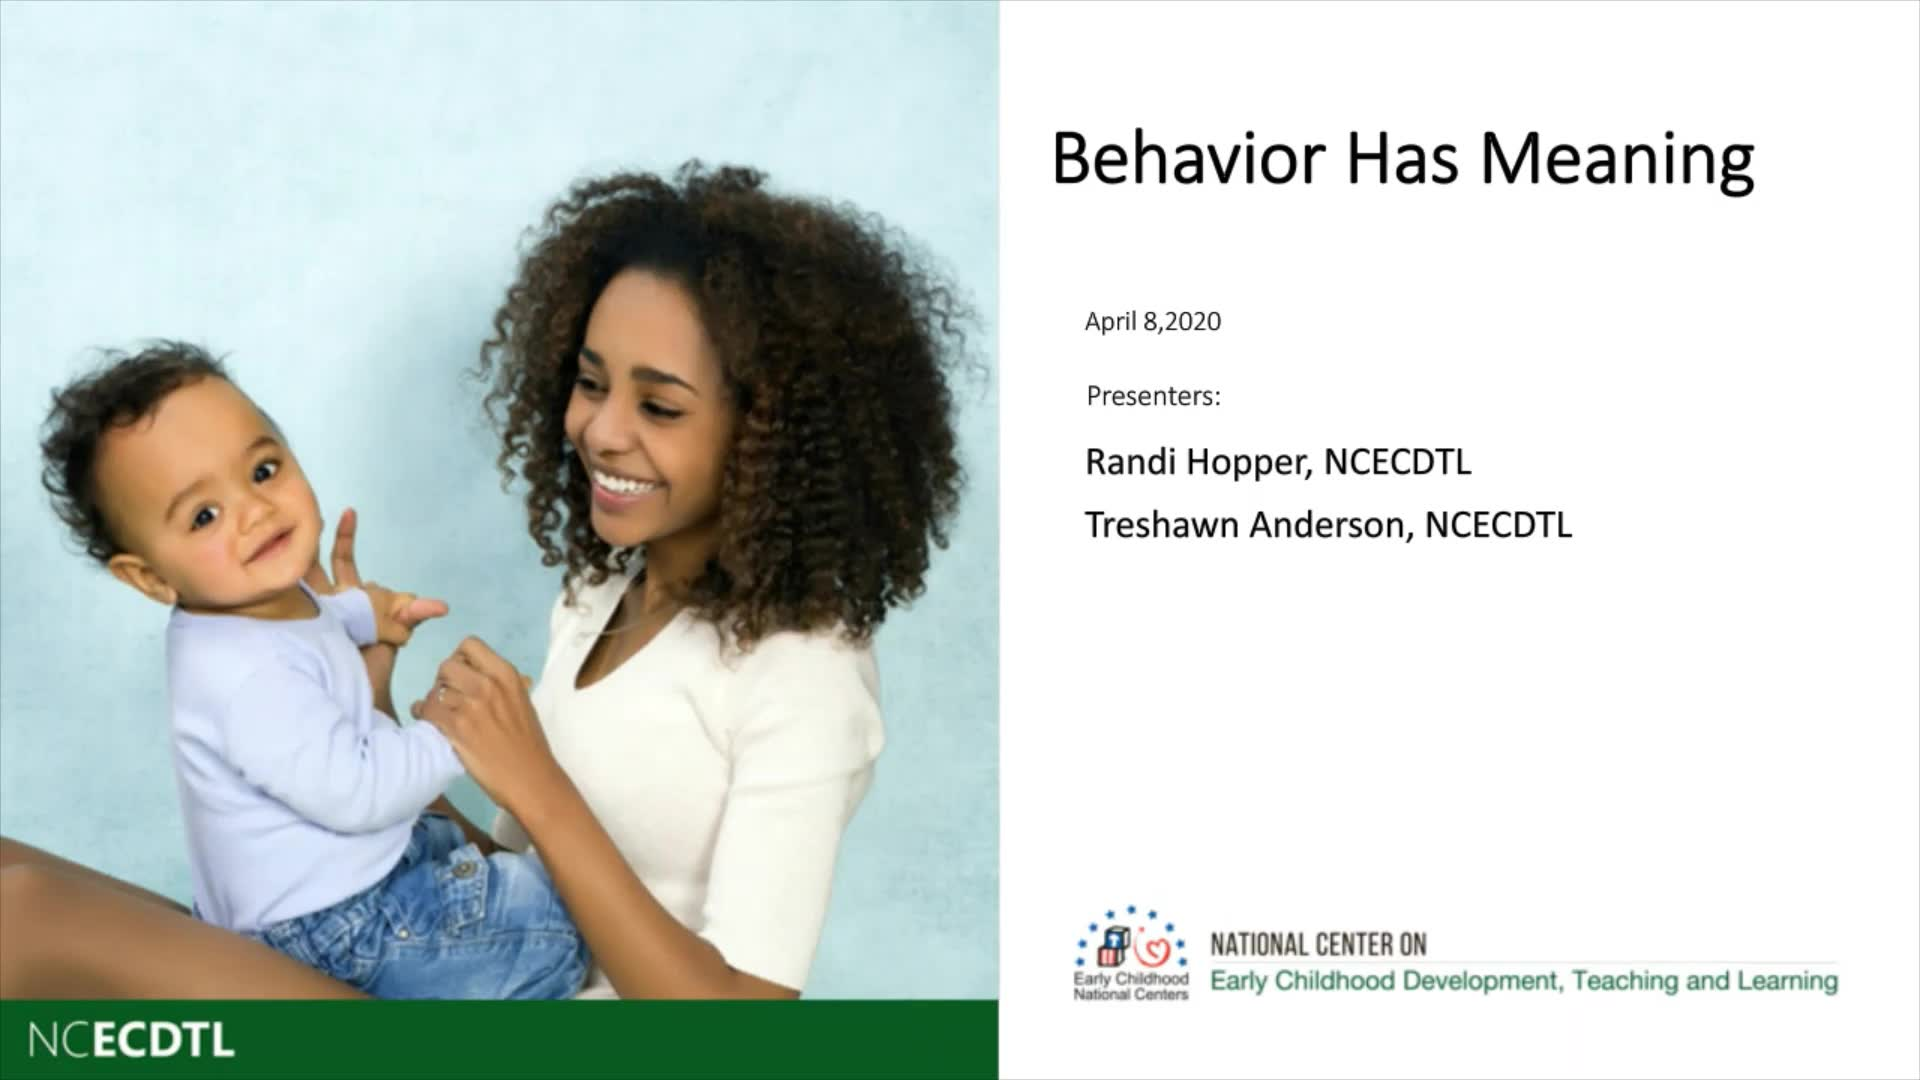 Behavior and Its Meaning